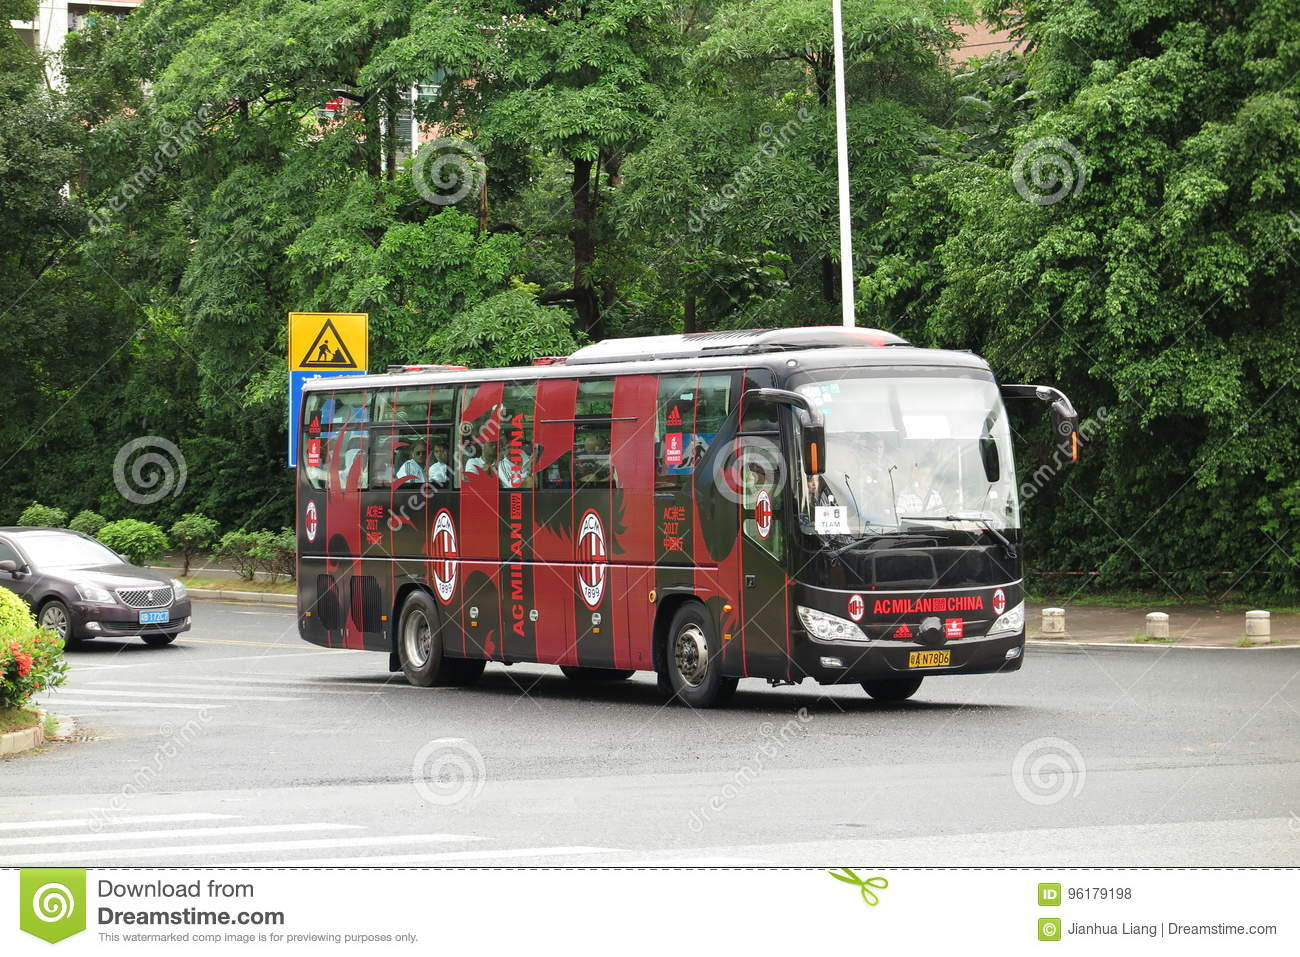 CA Milan Soccer Team Bus